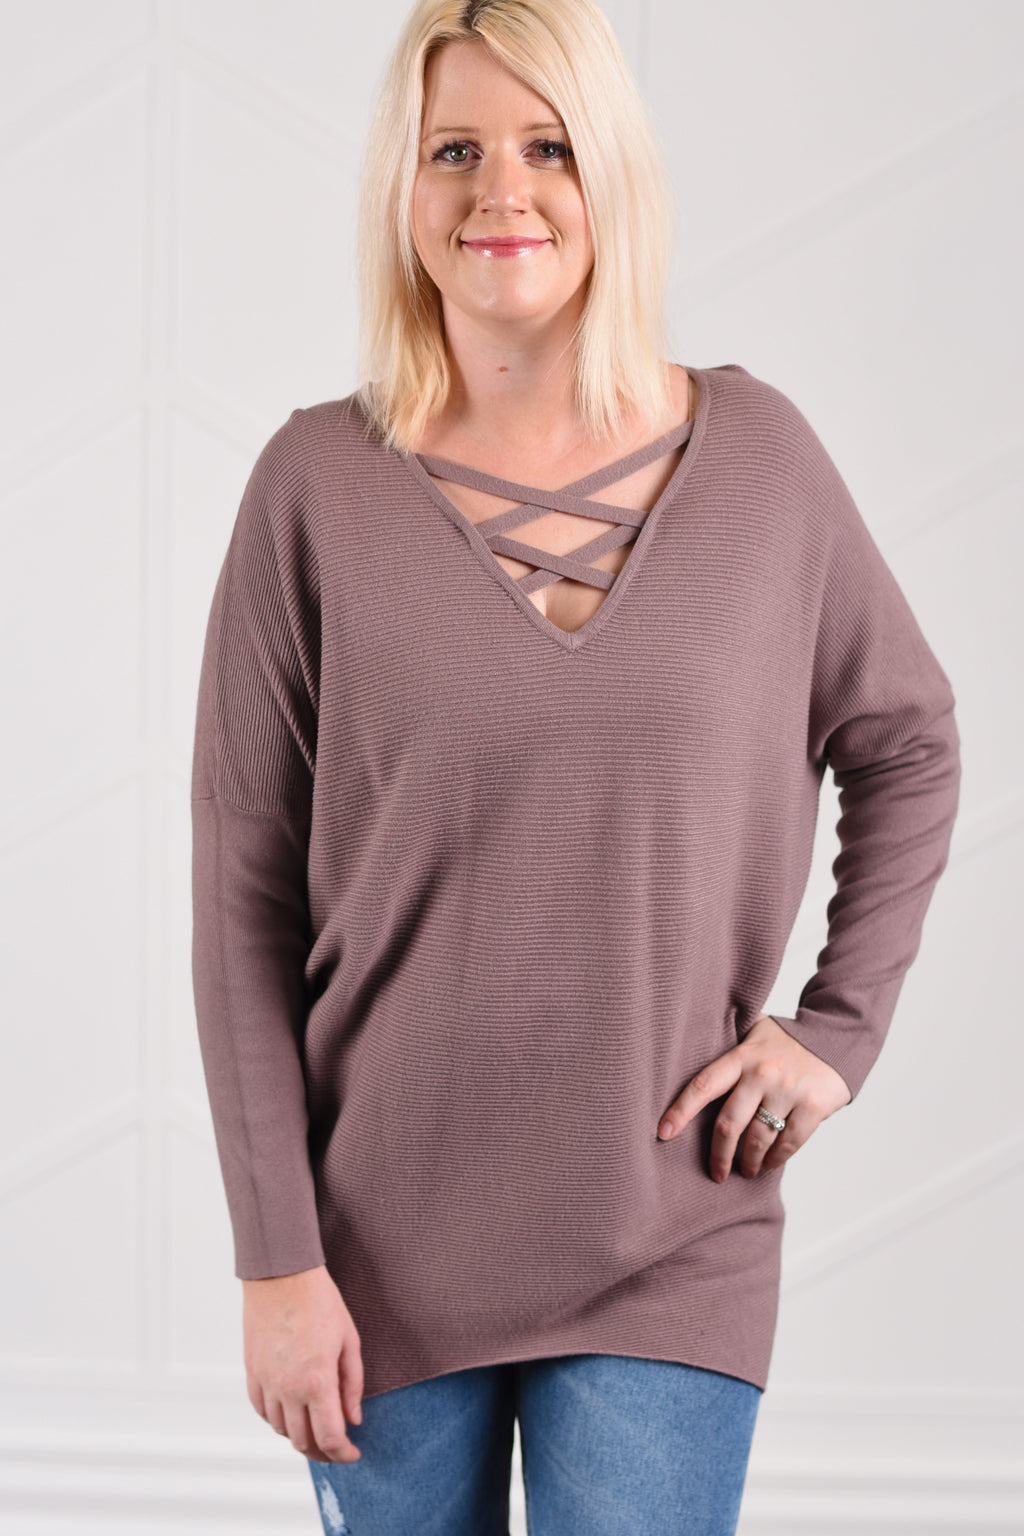 Christine Criss Cross Sweater - Mauve Brown - Strong Confident You